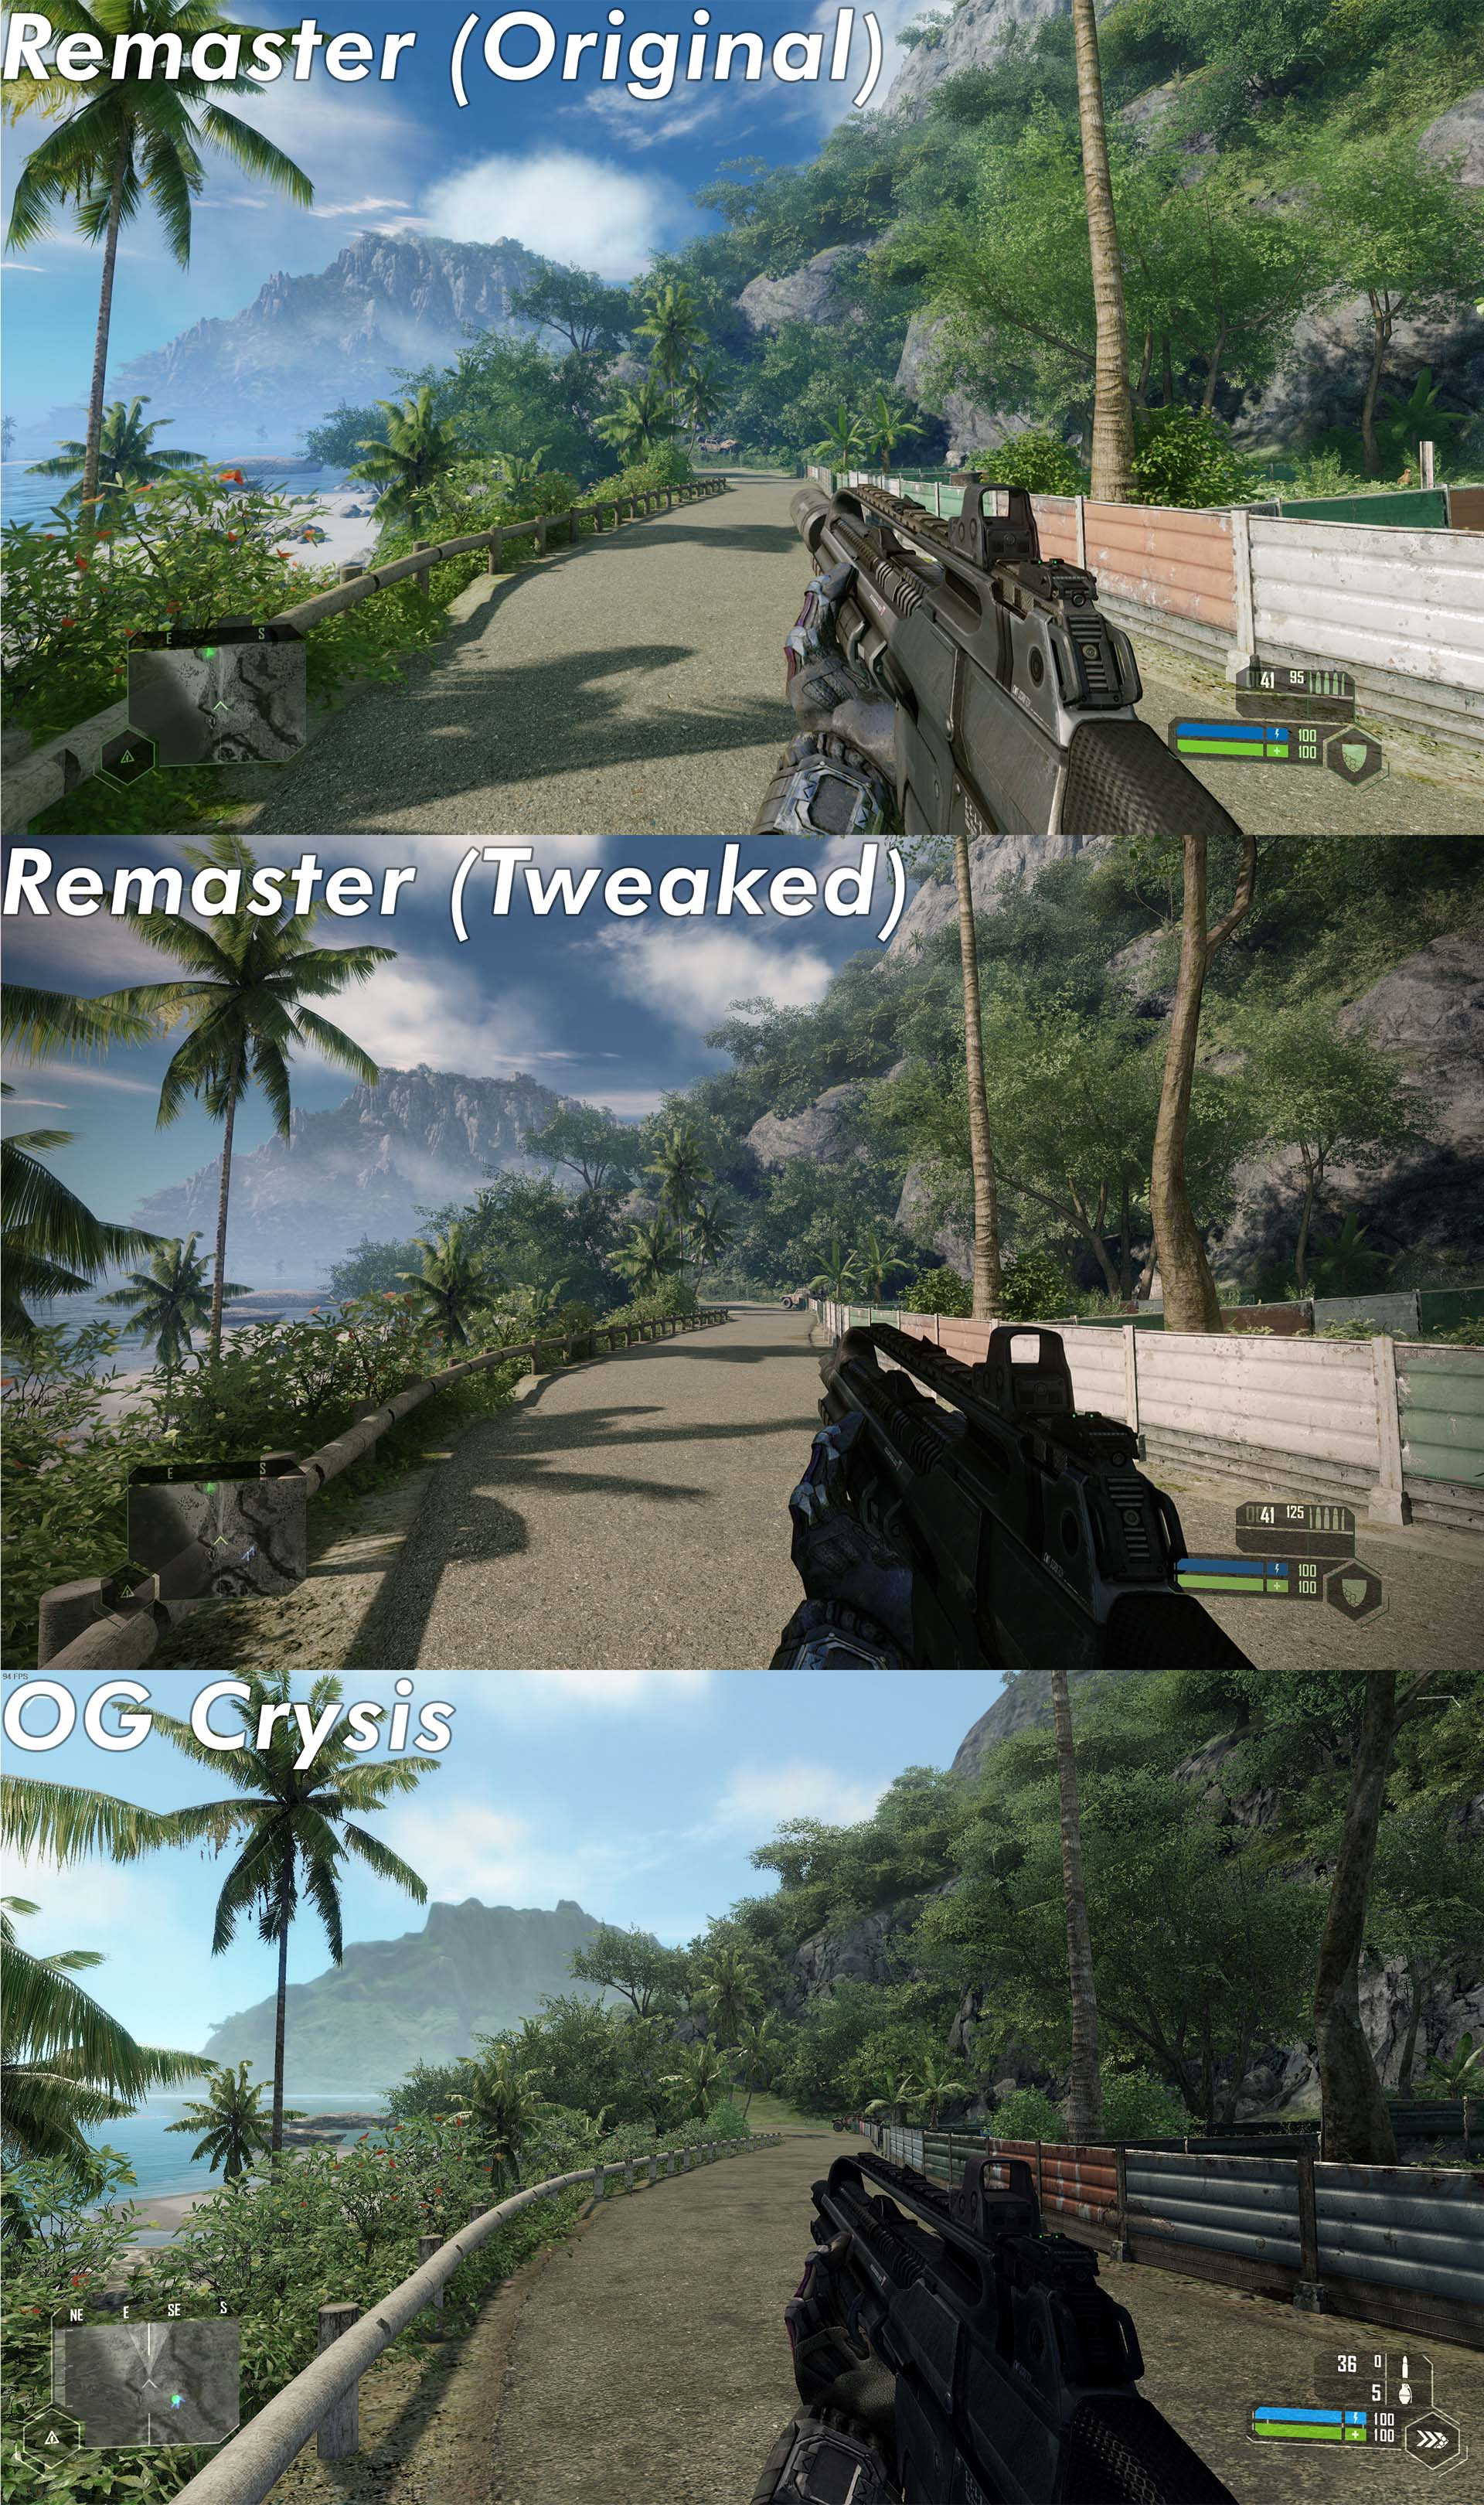 Crysis Remastered - How to Improve Image Quality on Geforce Experience in Game - How it looks and how to do it - 9F74E3D